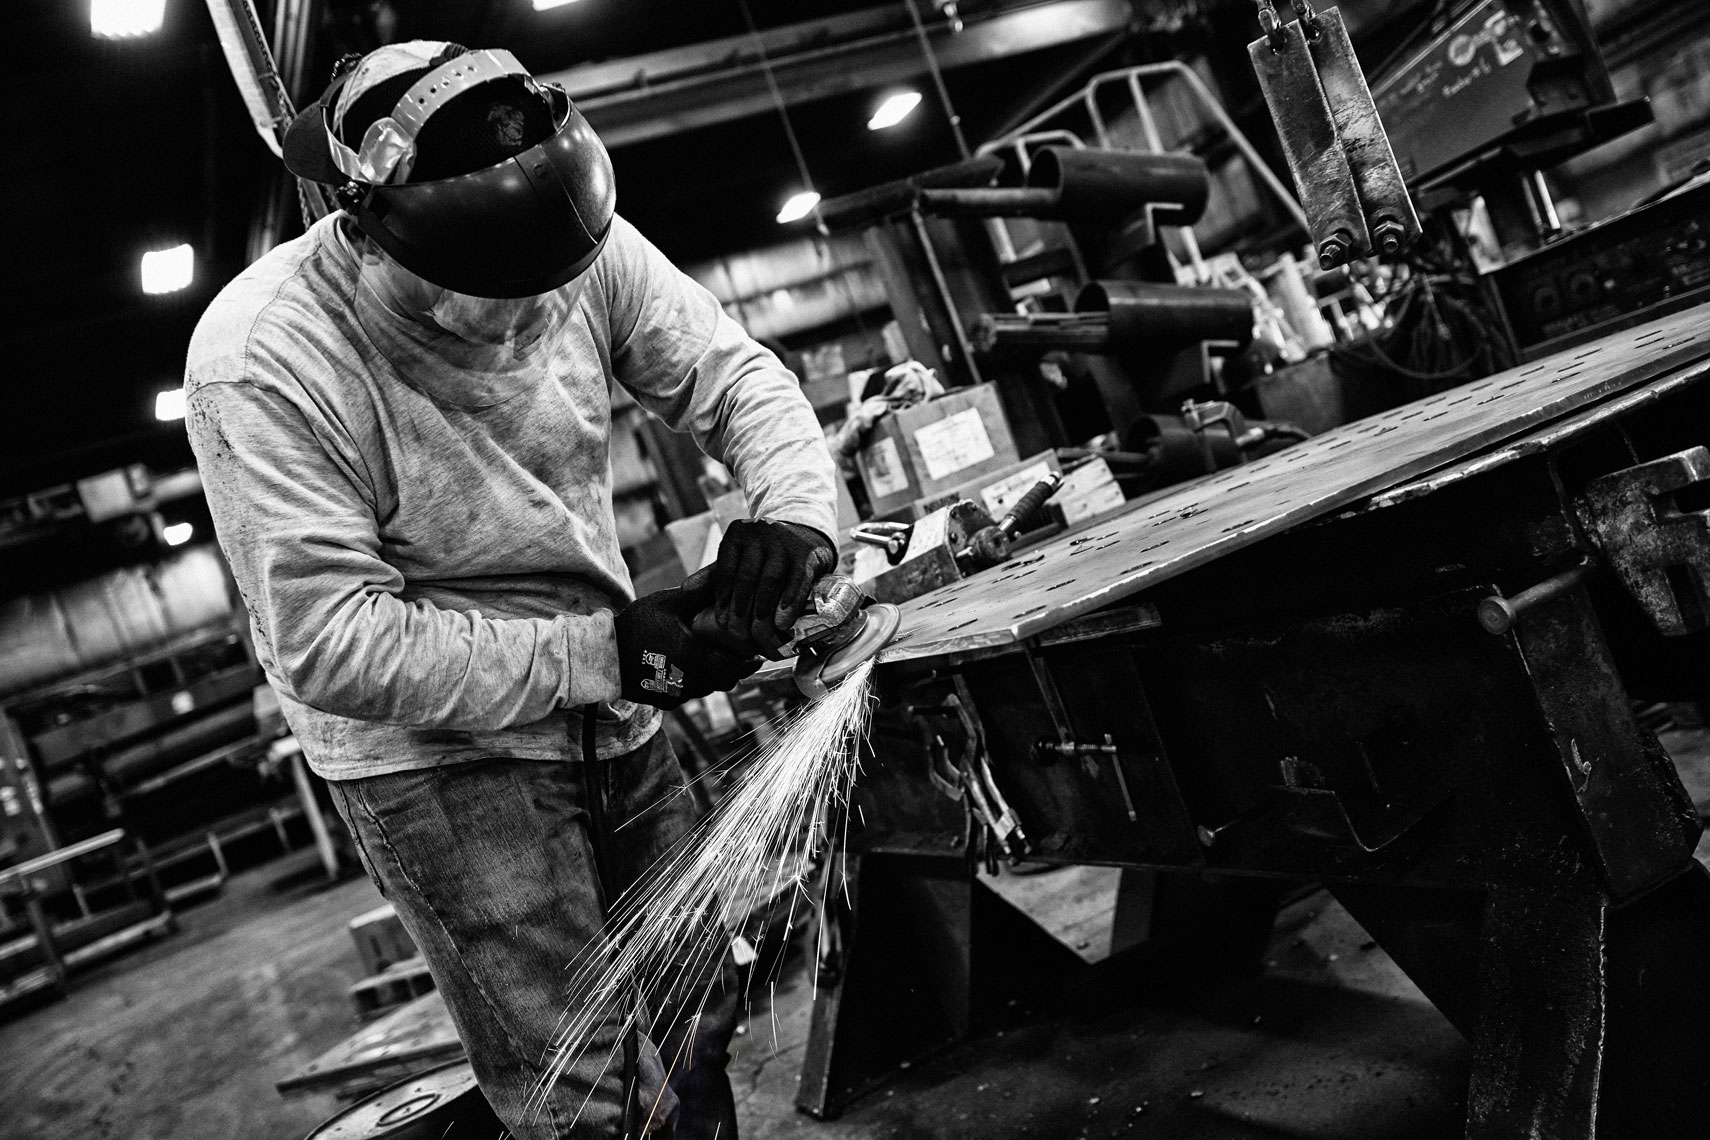 LeJeune Steel/man grinding/manufacturing photography